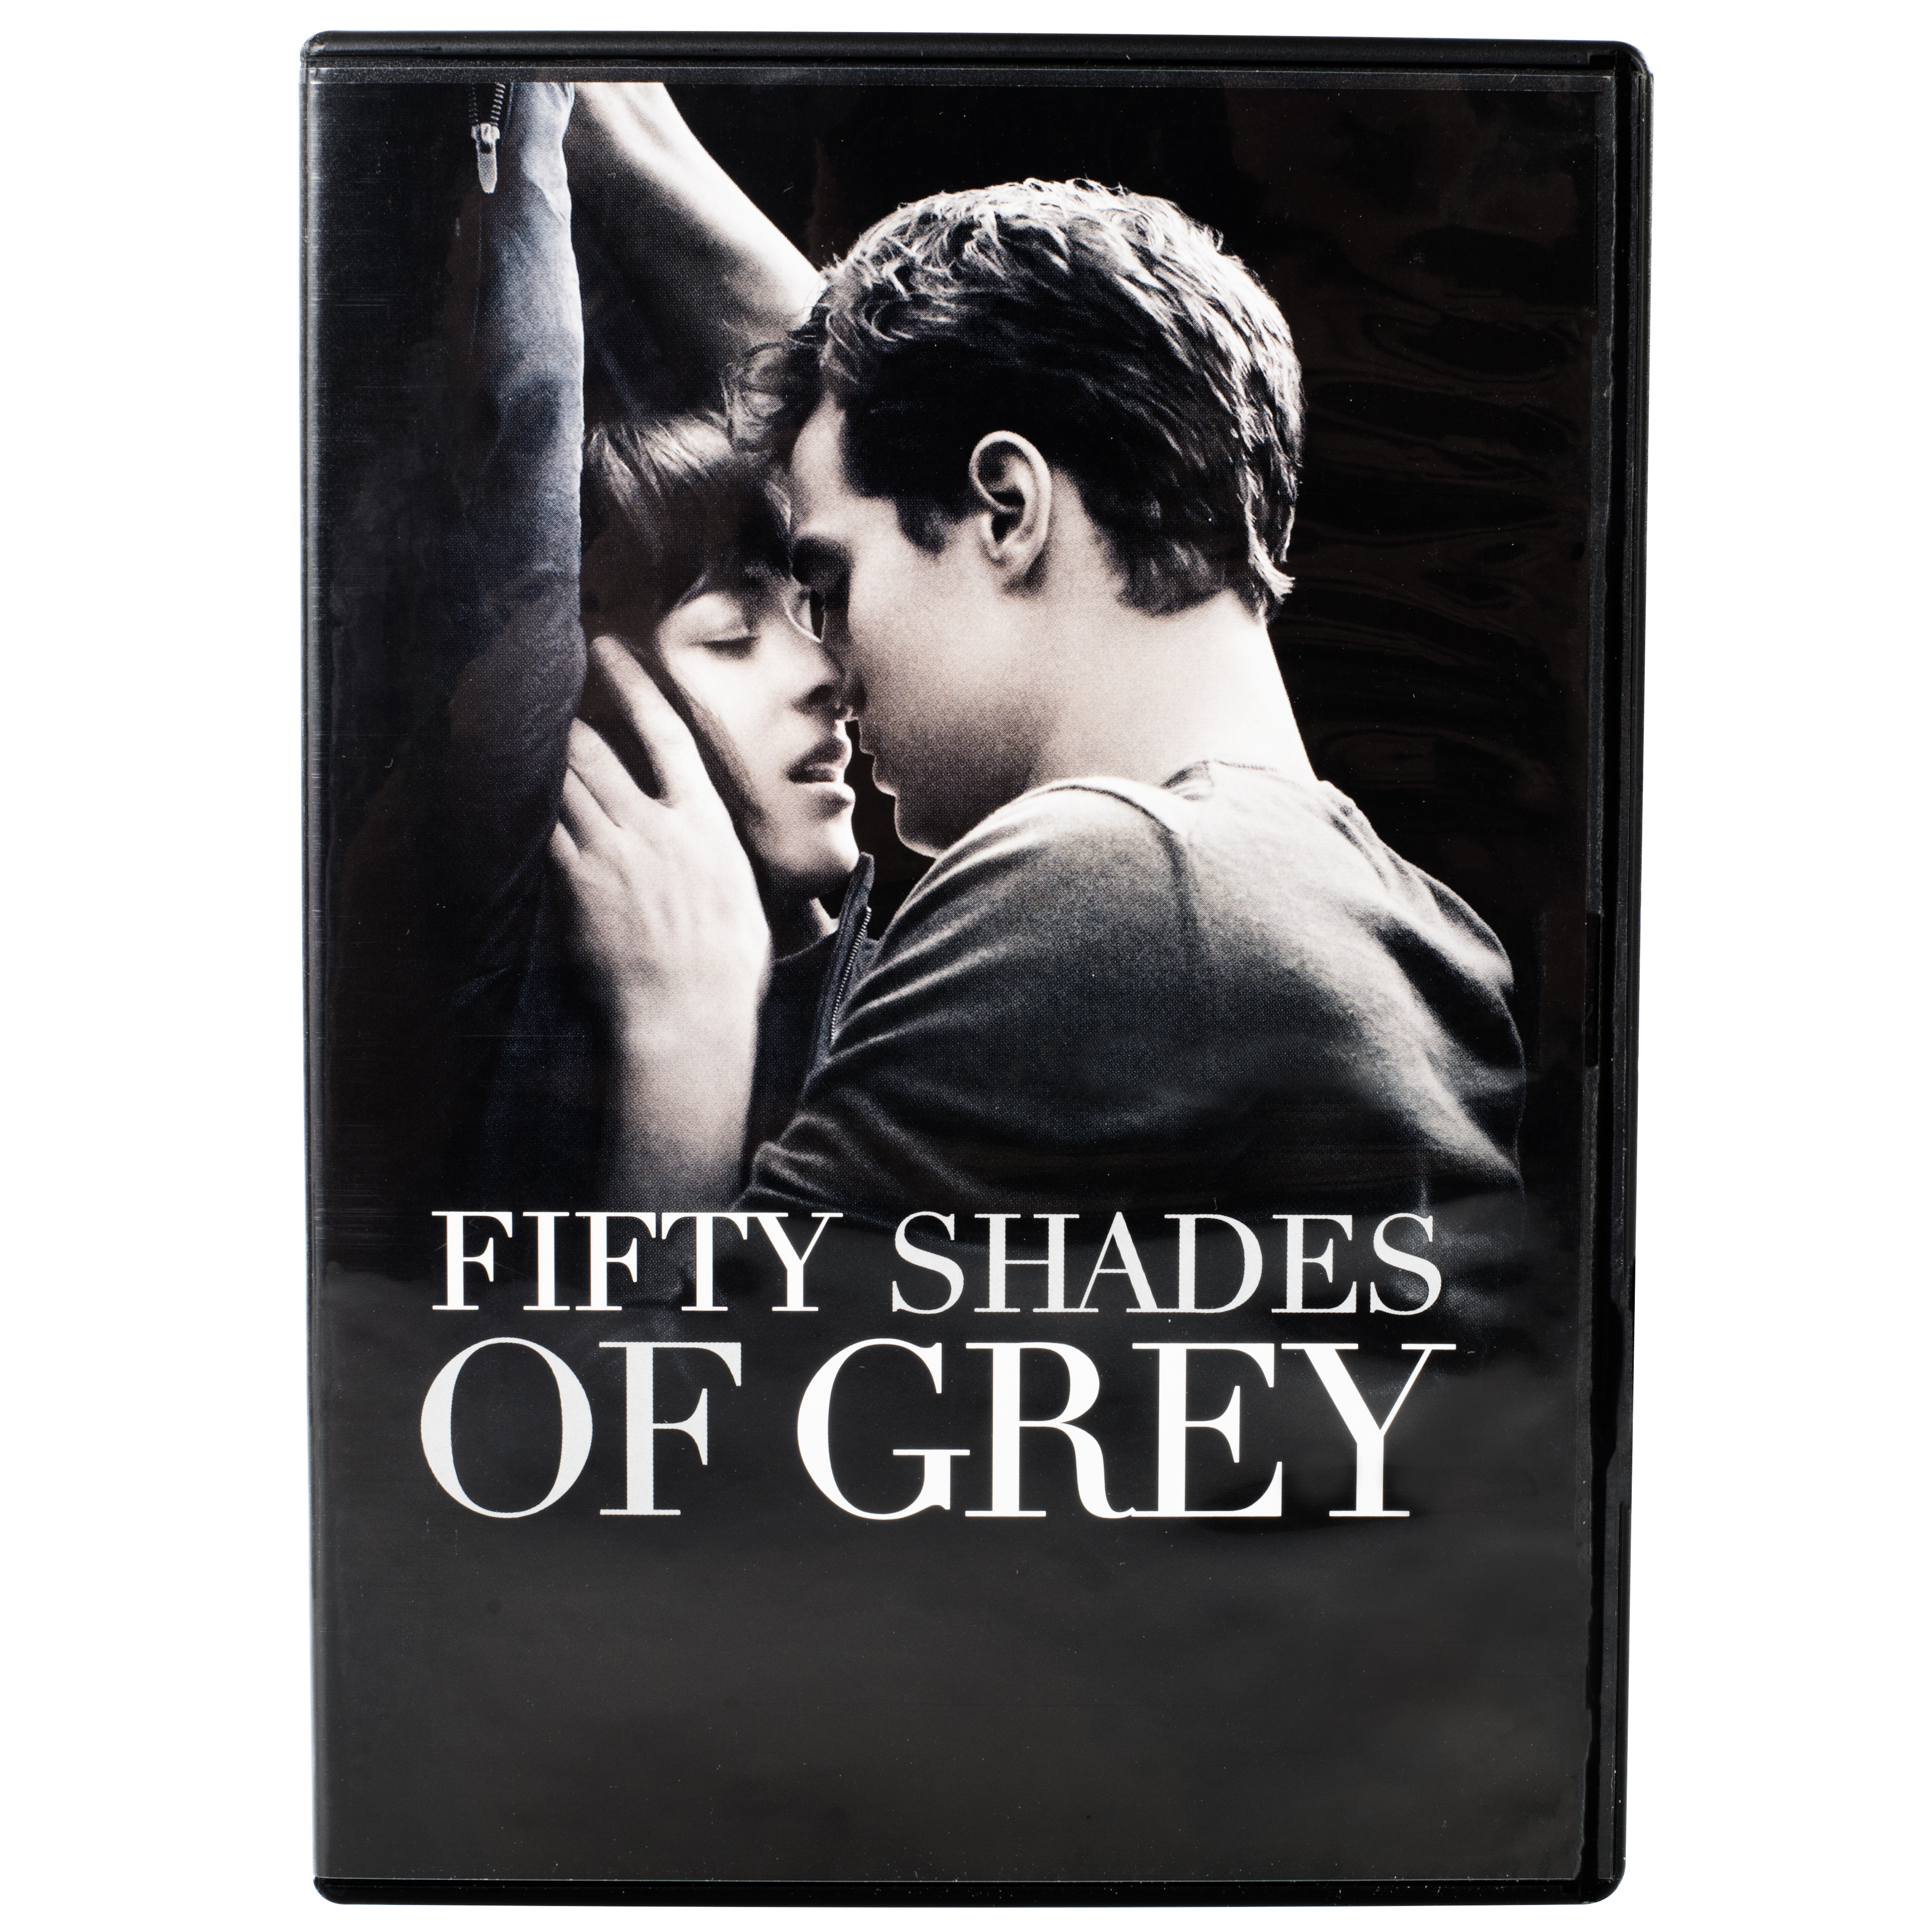 Fifty Shades of Grey, DVD, romance movie